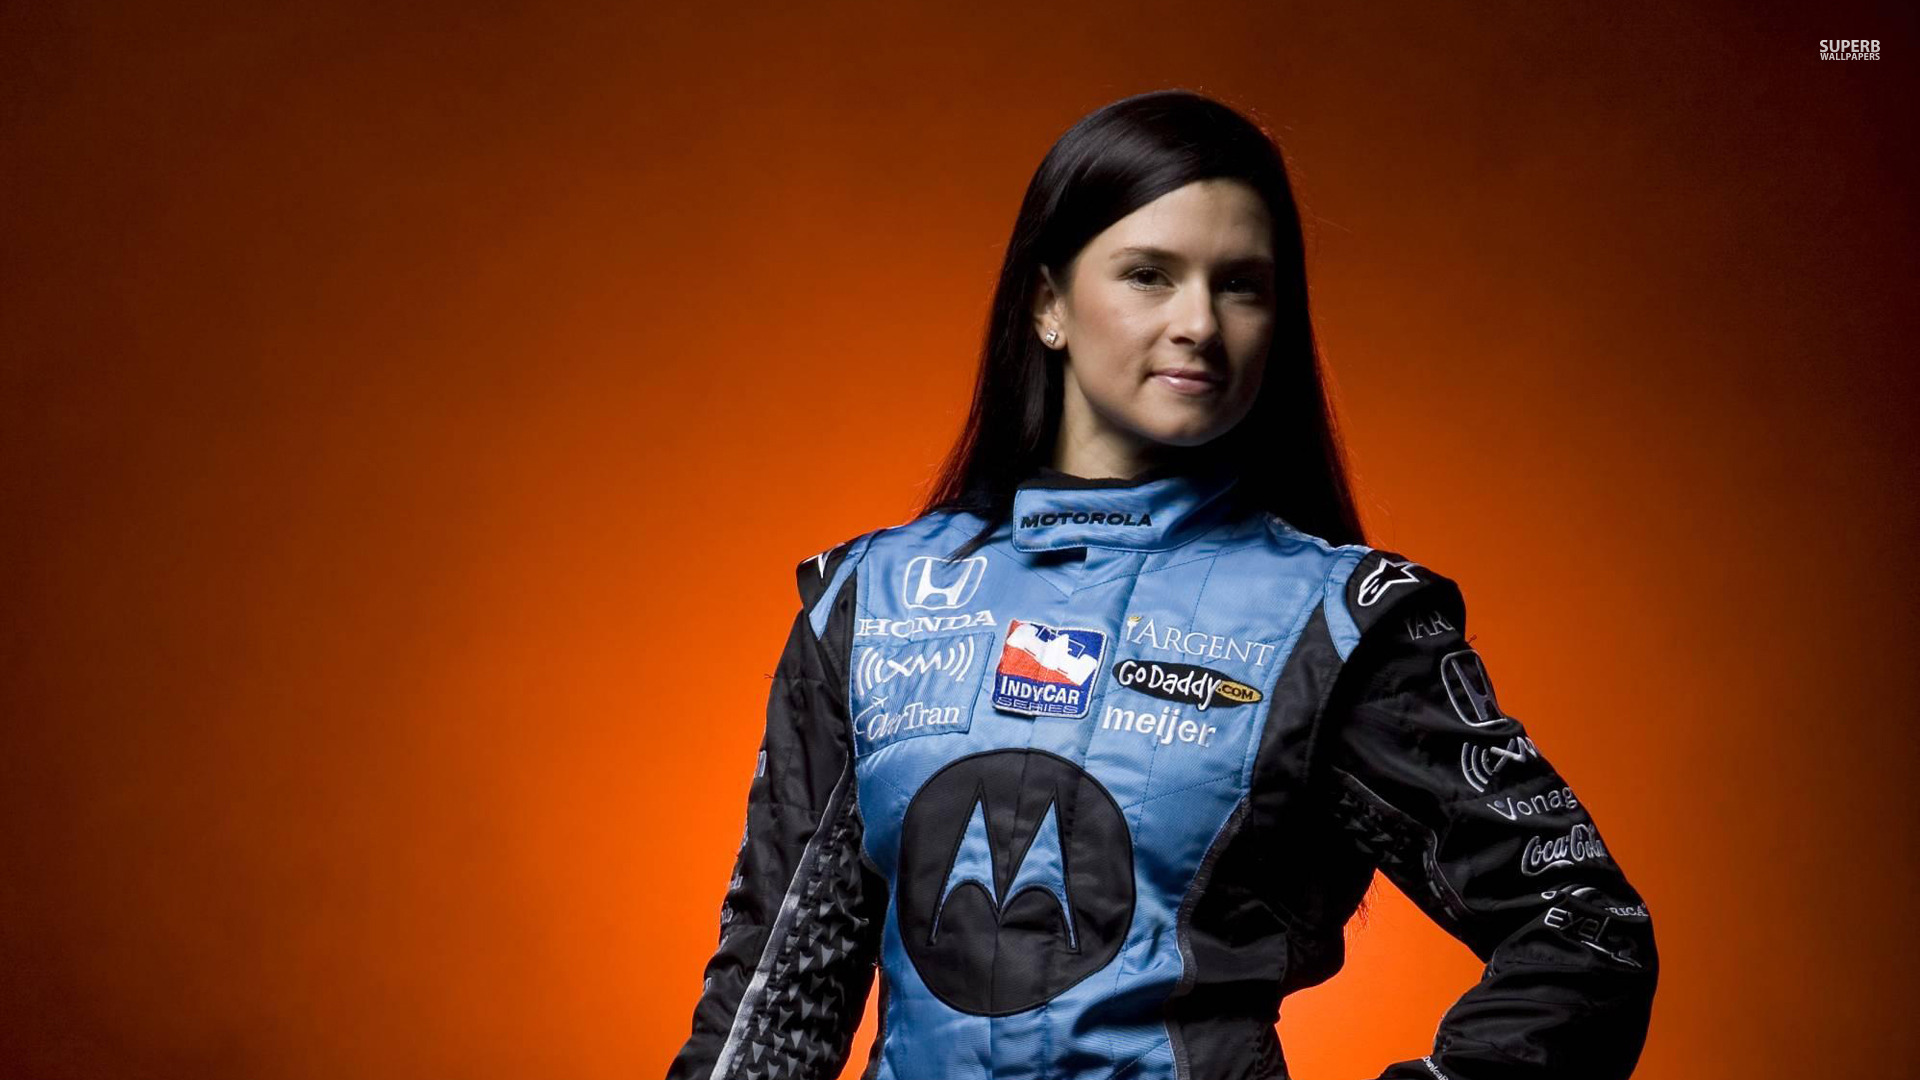 Danica Patrick Wallpapers High Resolution and Quality Download 1920x1080